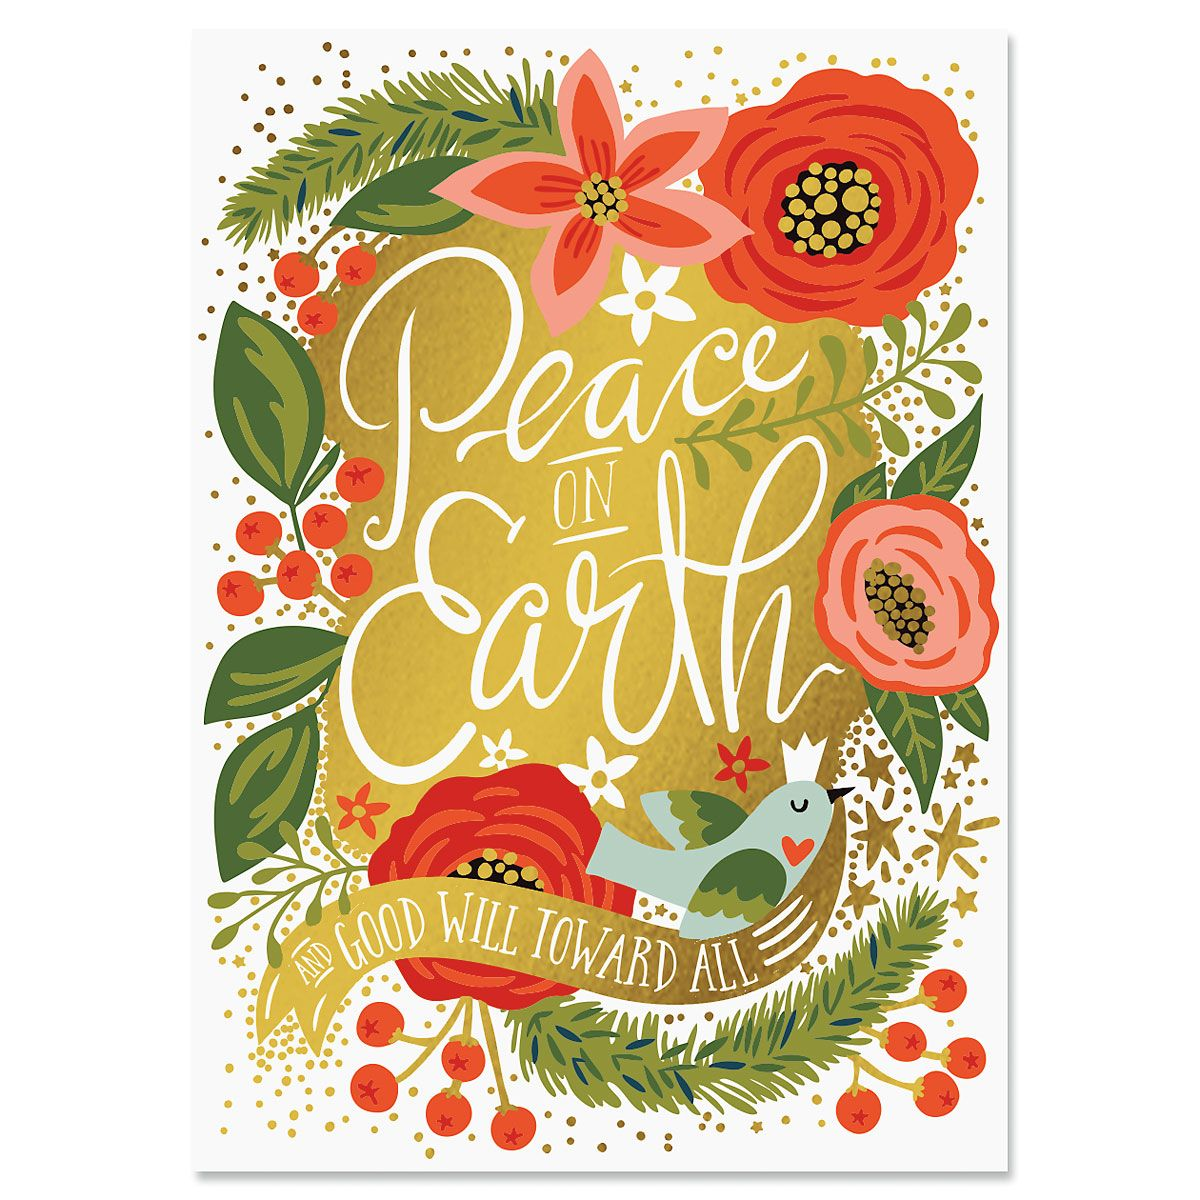 Peace on Earth Christmas Cards - Nonpersonalized | Current Catalog